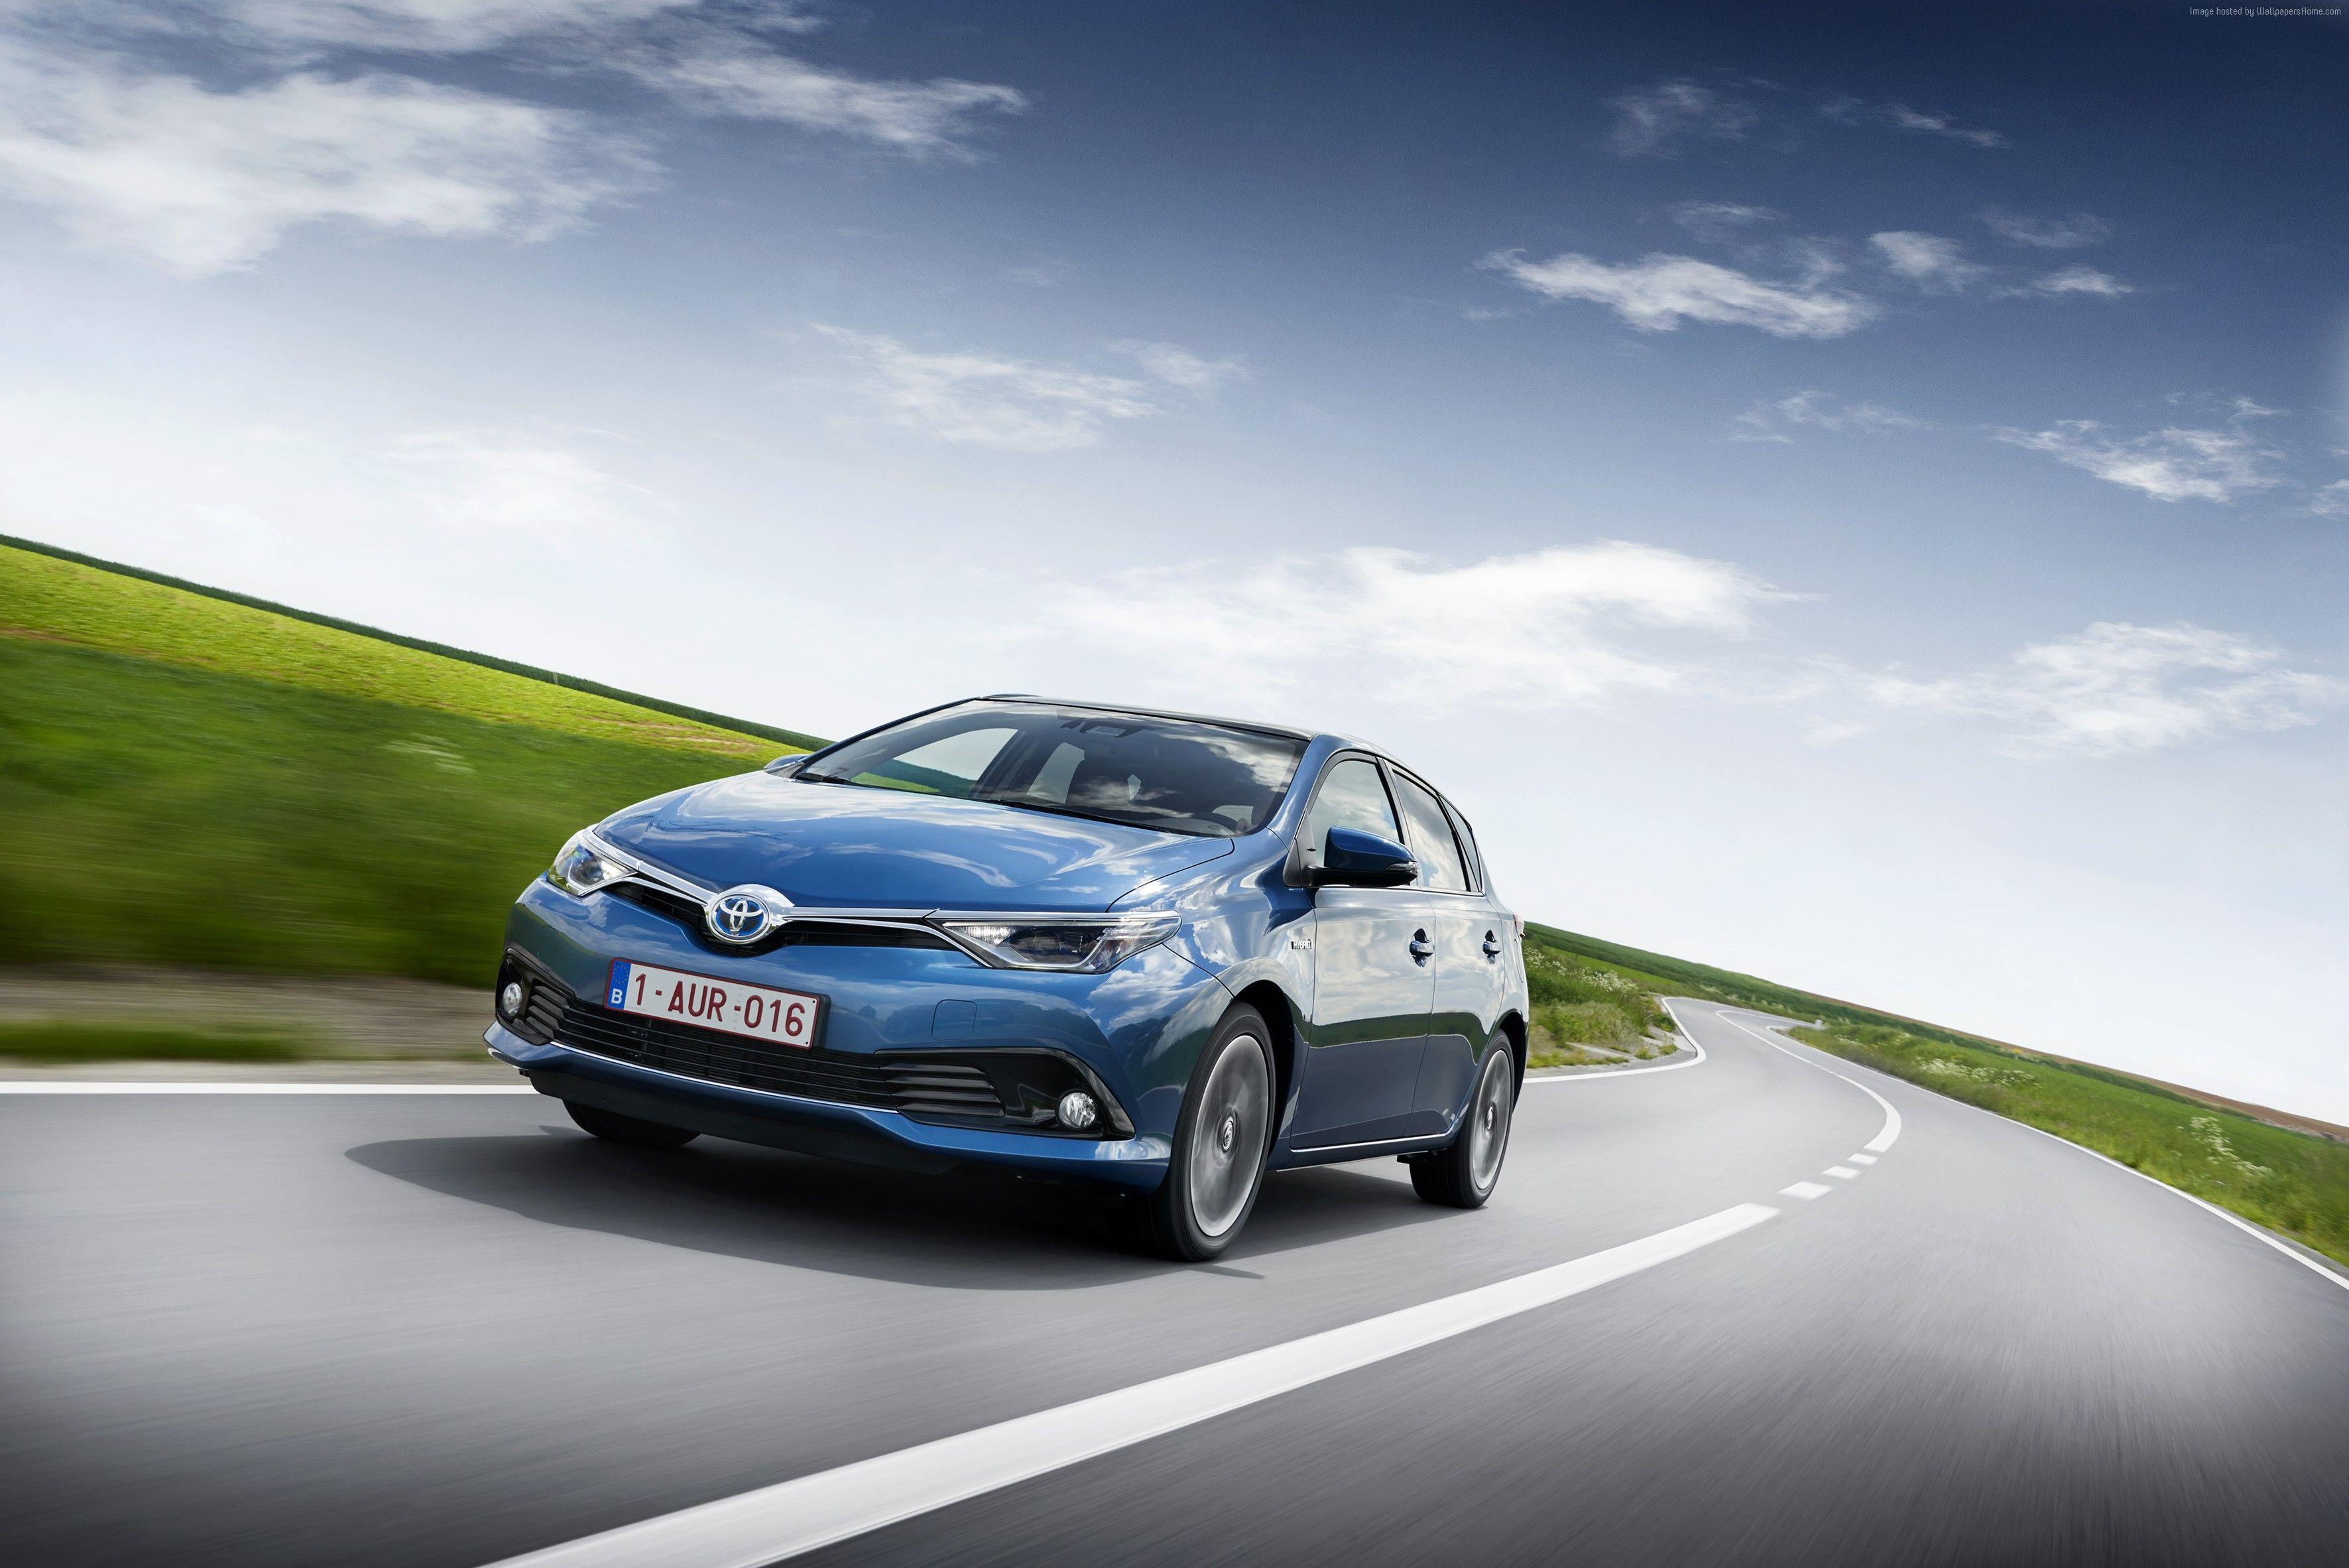 Wallpapers Toyota auris, hatchback, hybrid, blue., Cars & Bikes